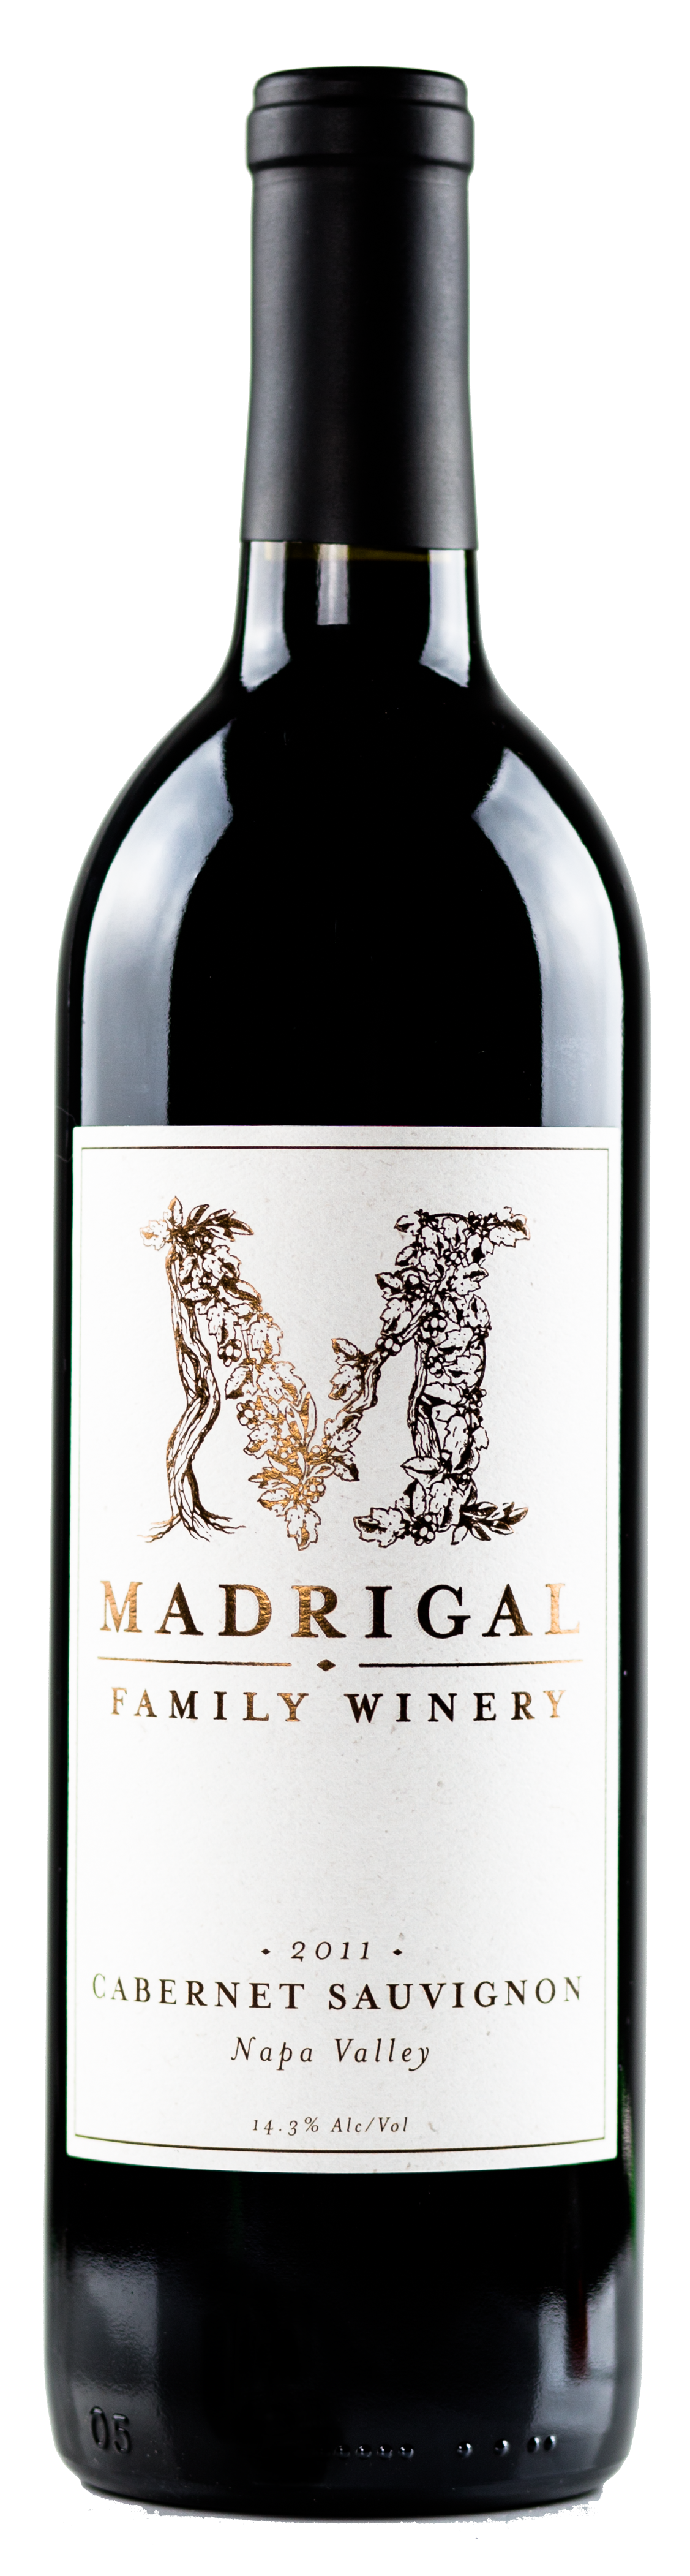 Old bottle label png. Trade madrigal family winery